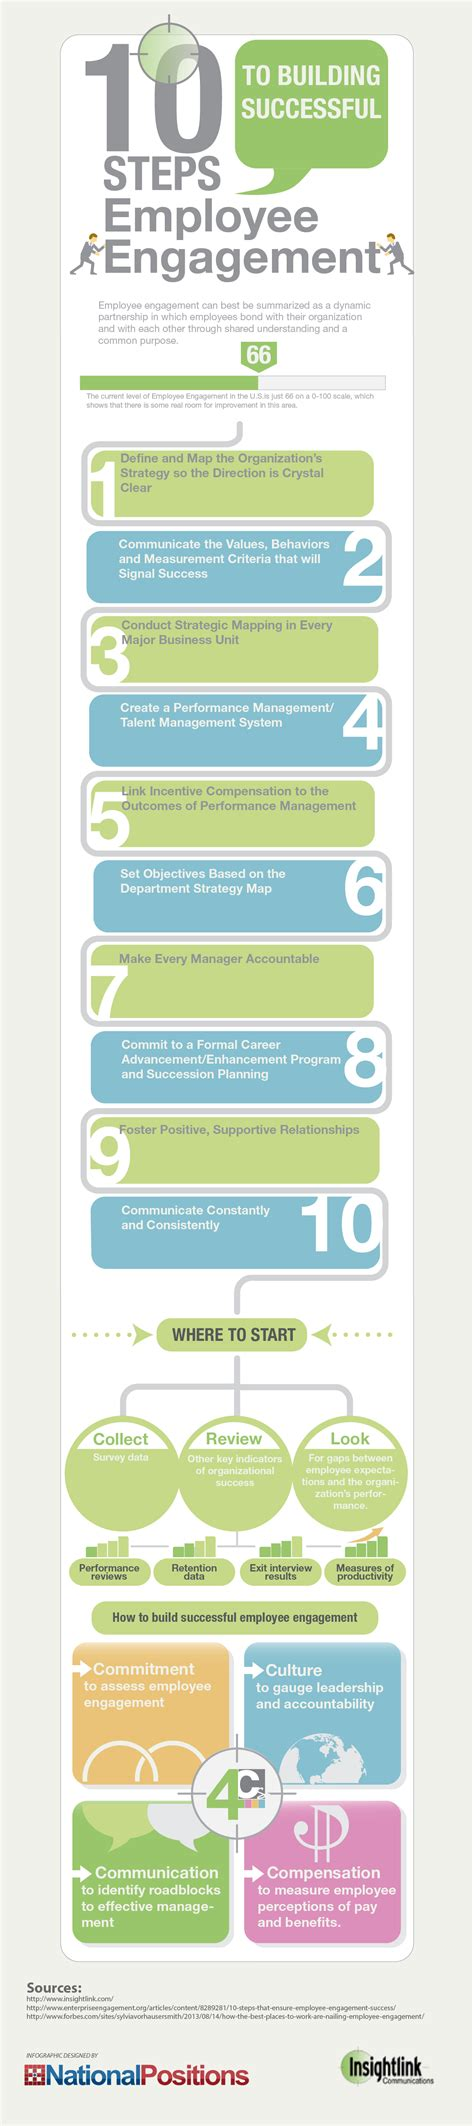 Learn 10 Steps To Building Successful Employee Engagement Insightlink